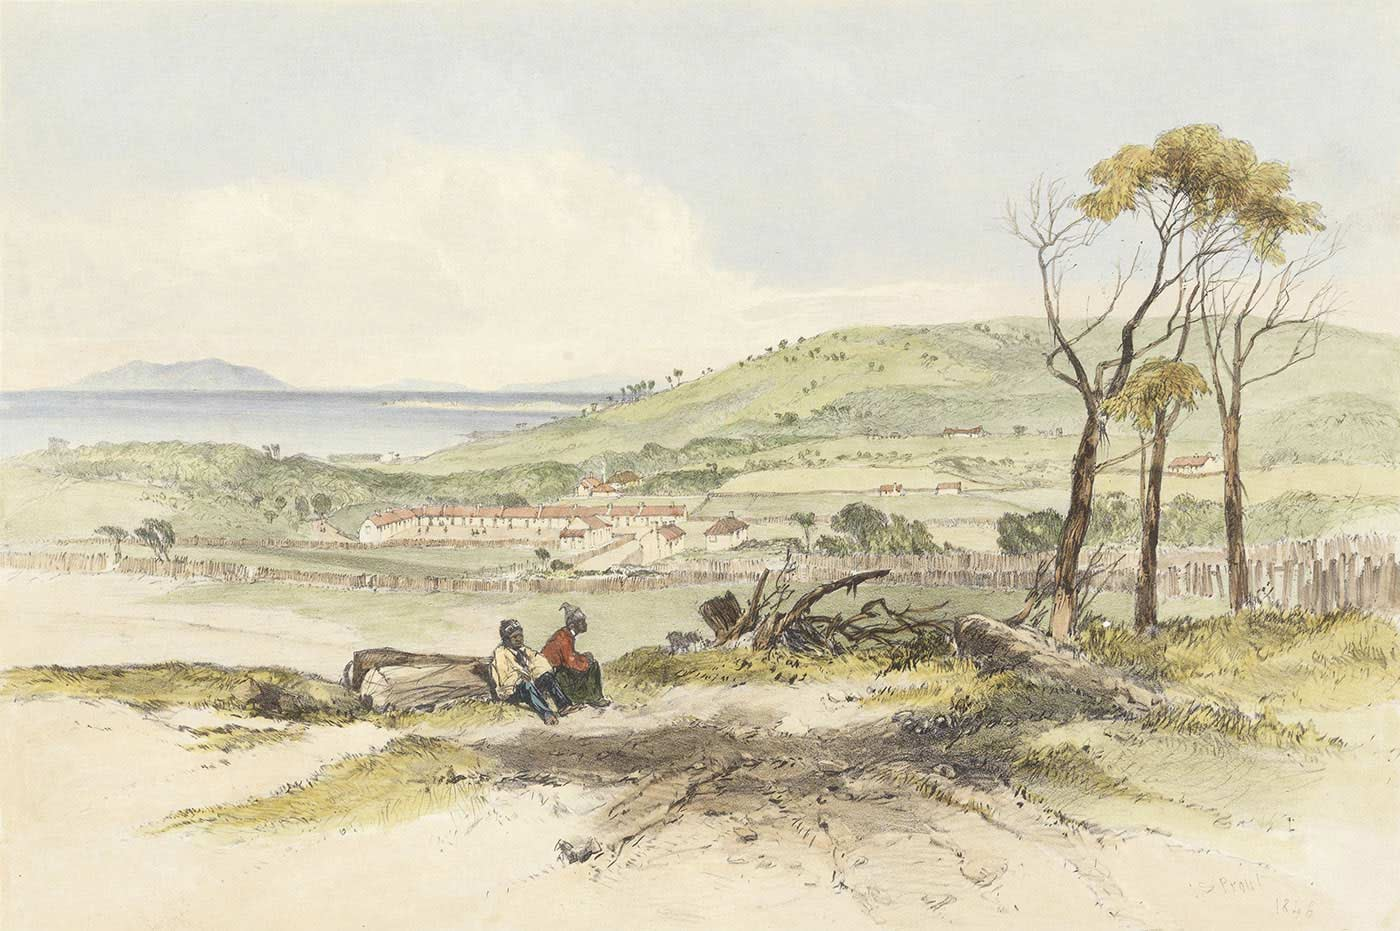 watercolour showing two Aboriginal people sitting in a clearing with a small settlement in the background and the sea beyond.